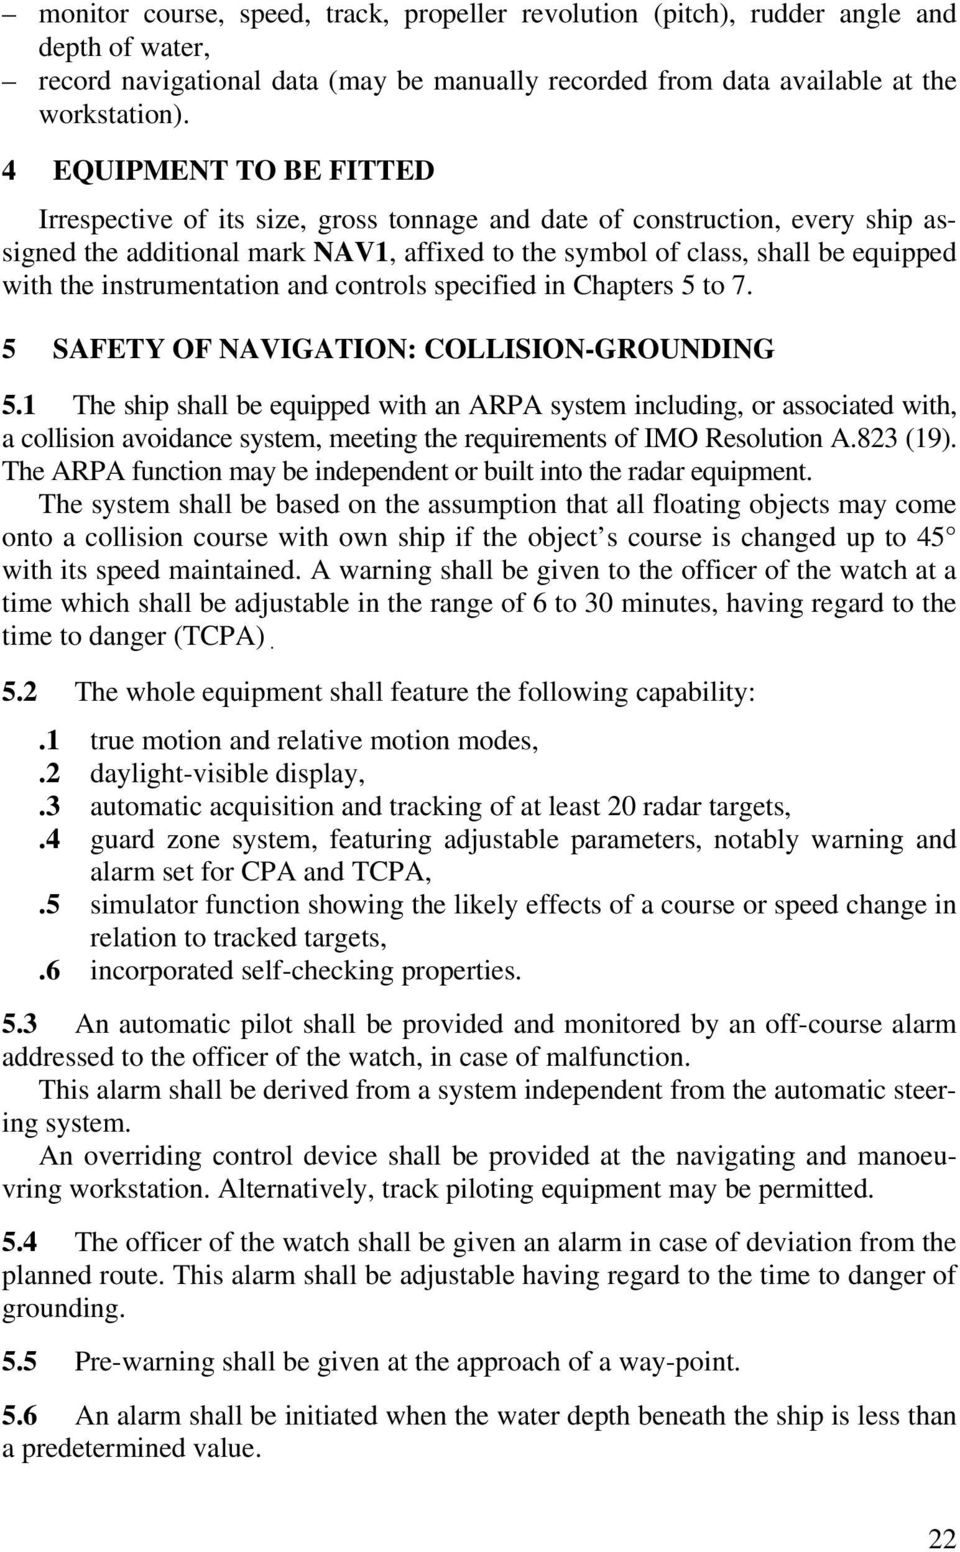 instrumentation and controls specified in Chapters 5 to 7. 5 SAFETY OF NAVIGATION: COLLISION-GROUNDING 5.